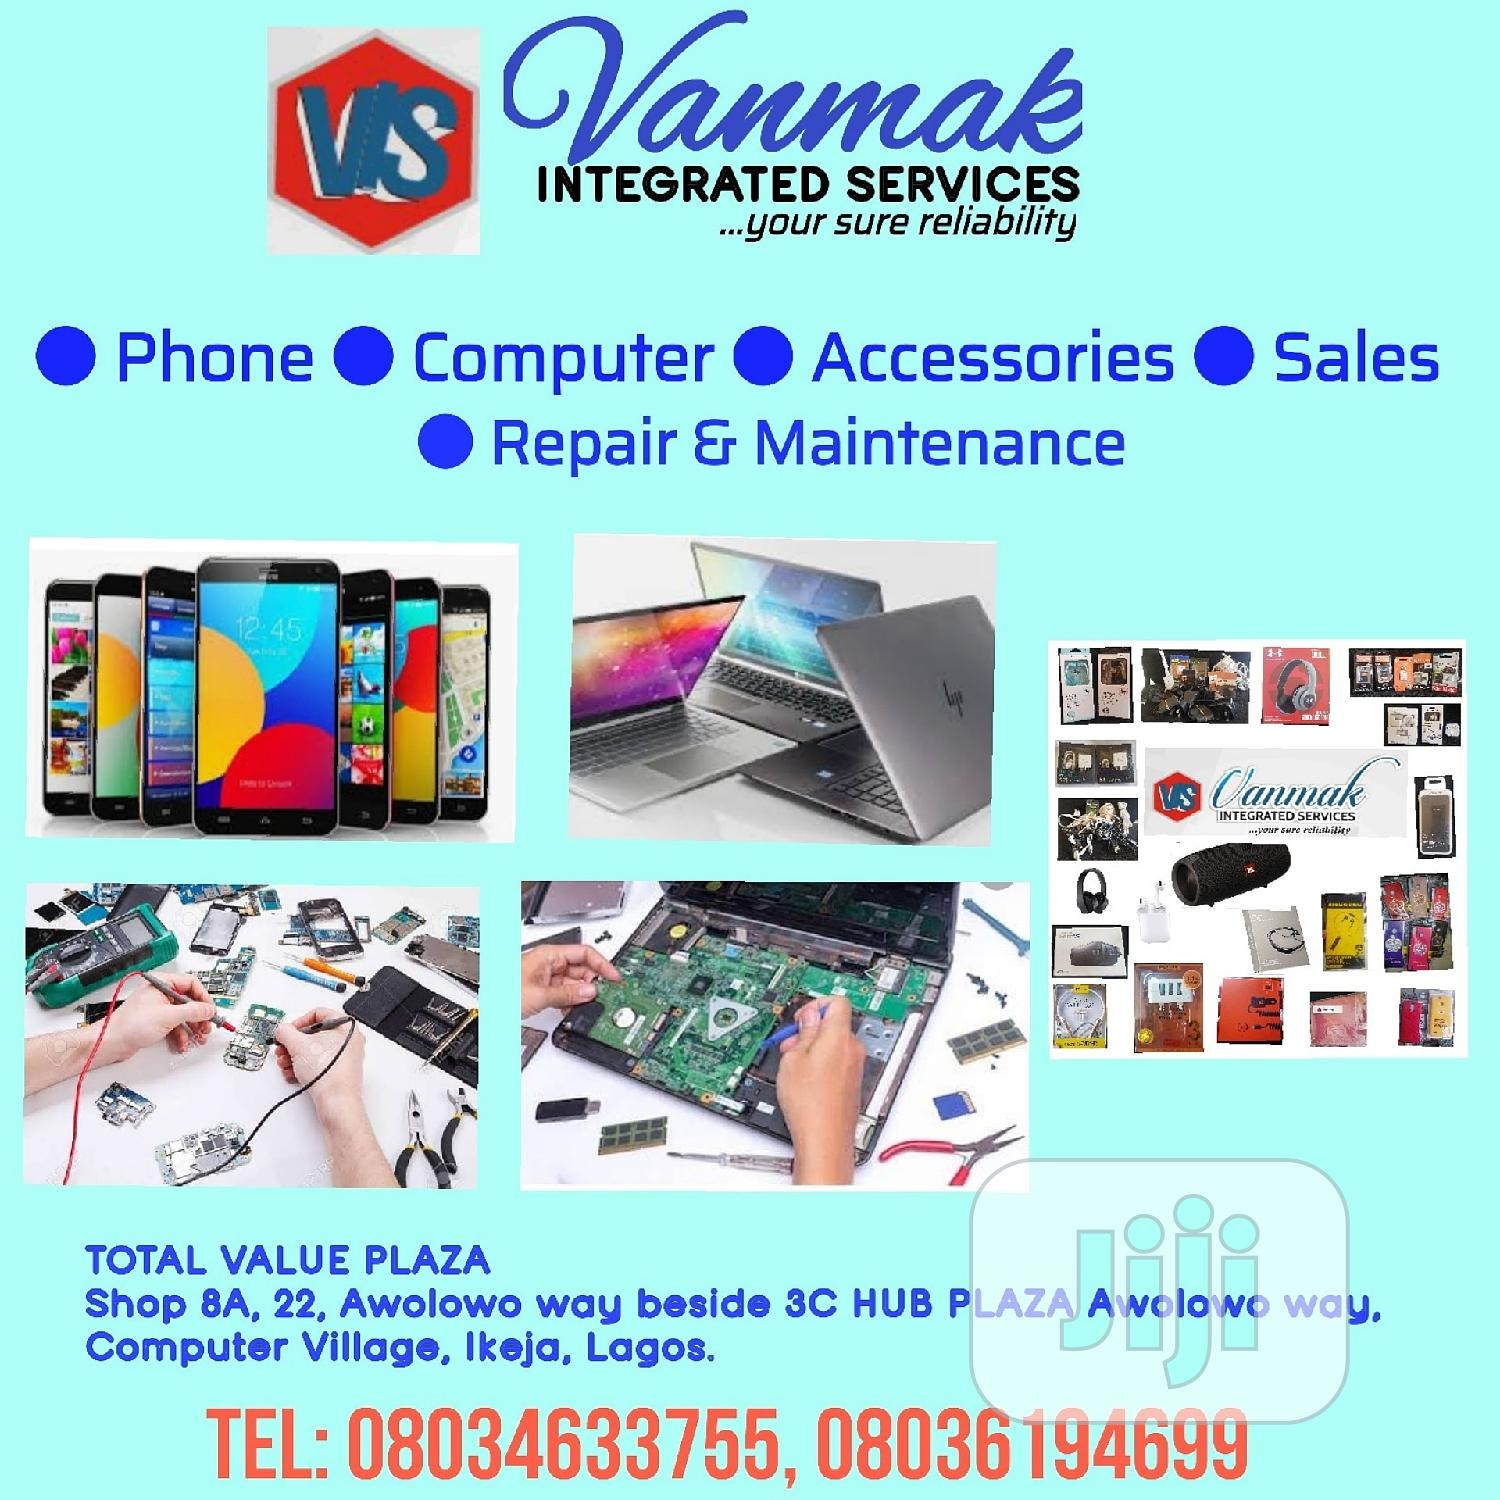 Vanmak Integrated Services